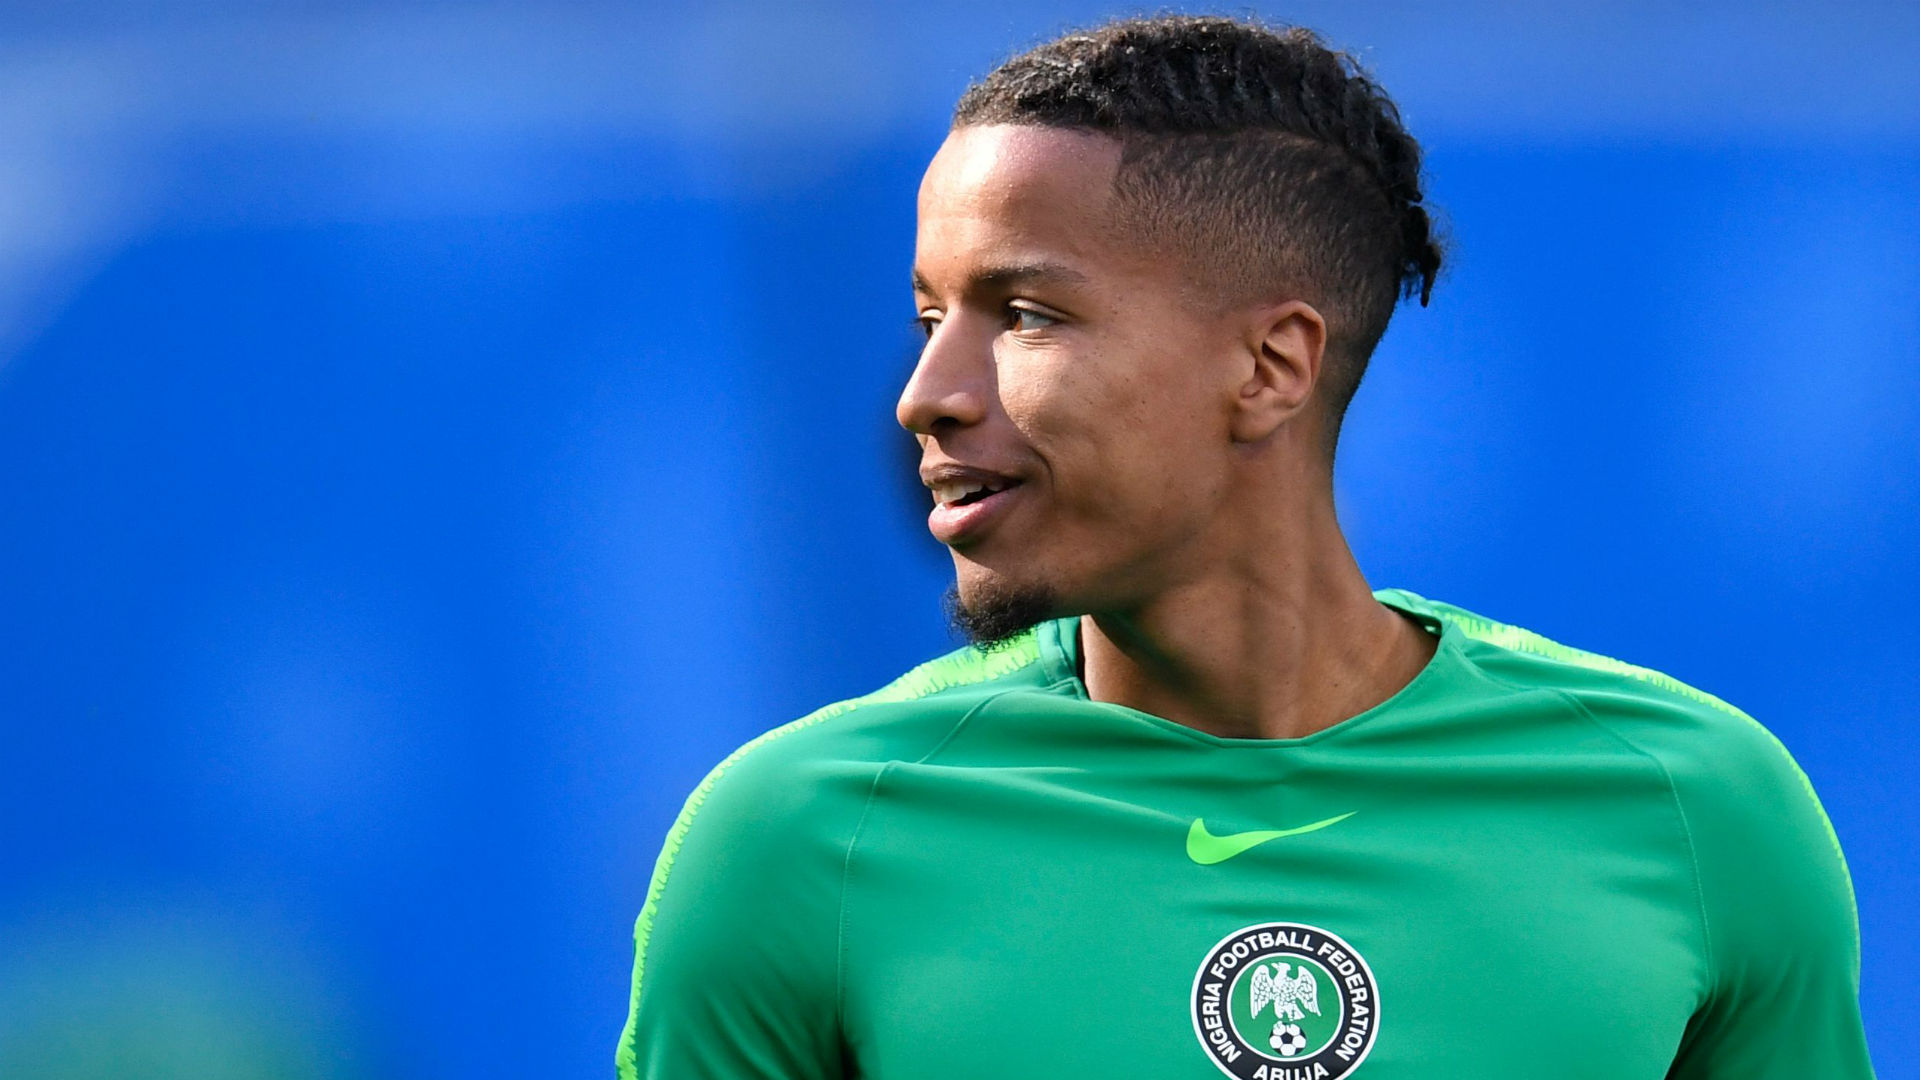 Image result for Tyrone Ebuehi nigeria 2019